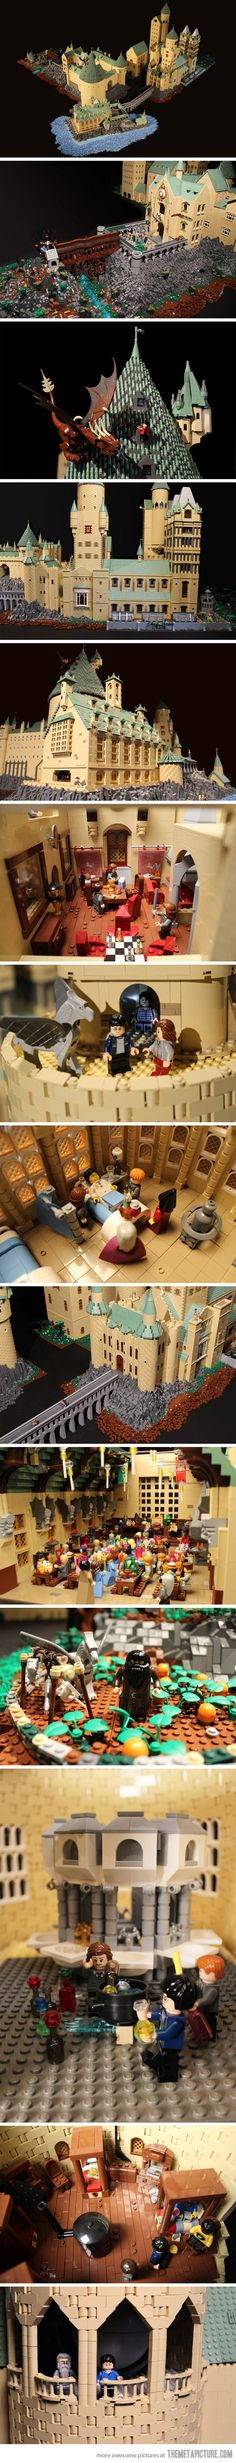 Harry Potter Lego Hogwarts Made By Alice Finch, a Lego Designer. Click through for more pics